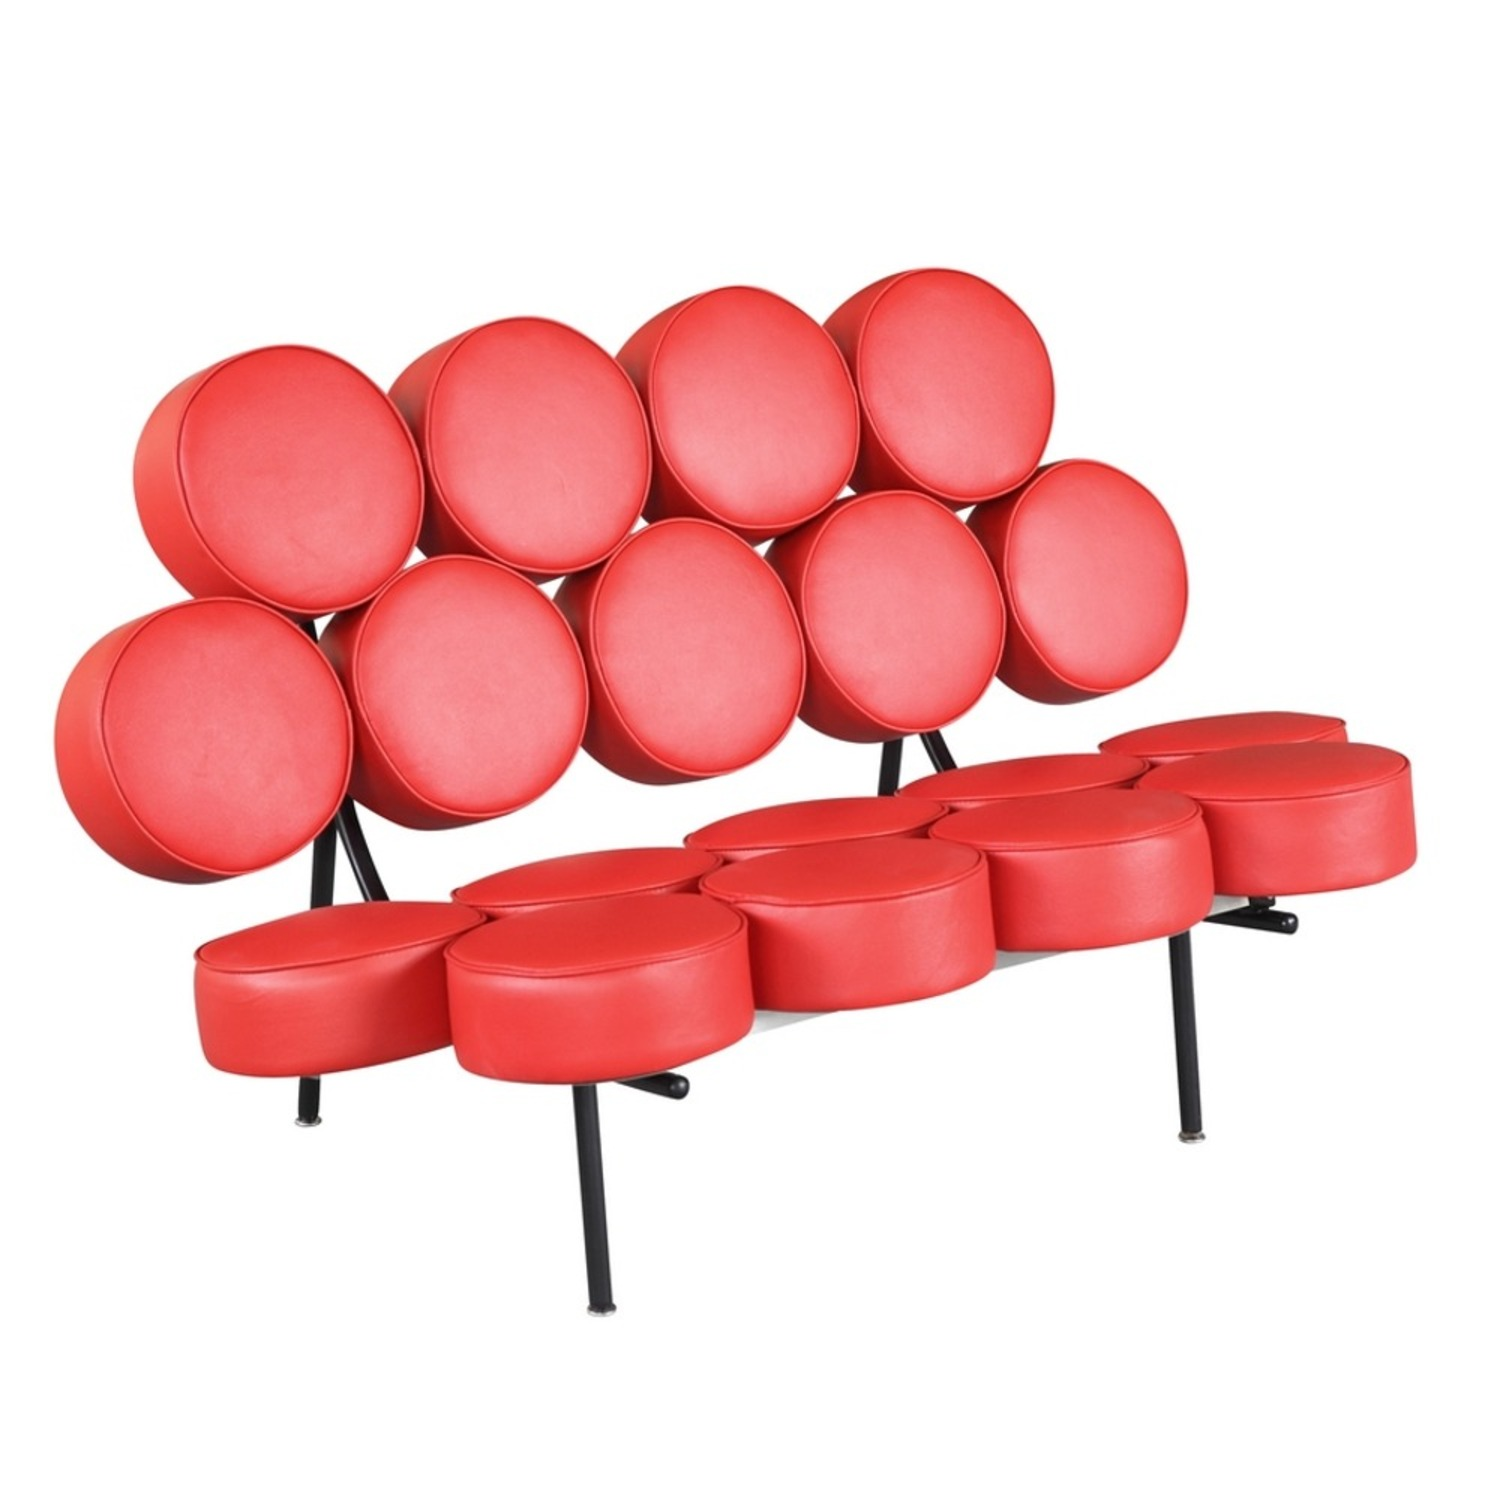 Sofa In Red Leather W/ Circle Seat & Back Design - image-0